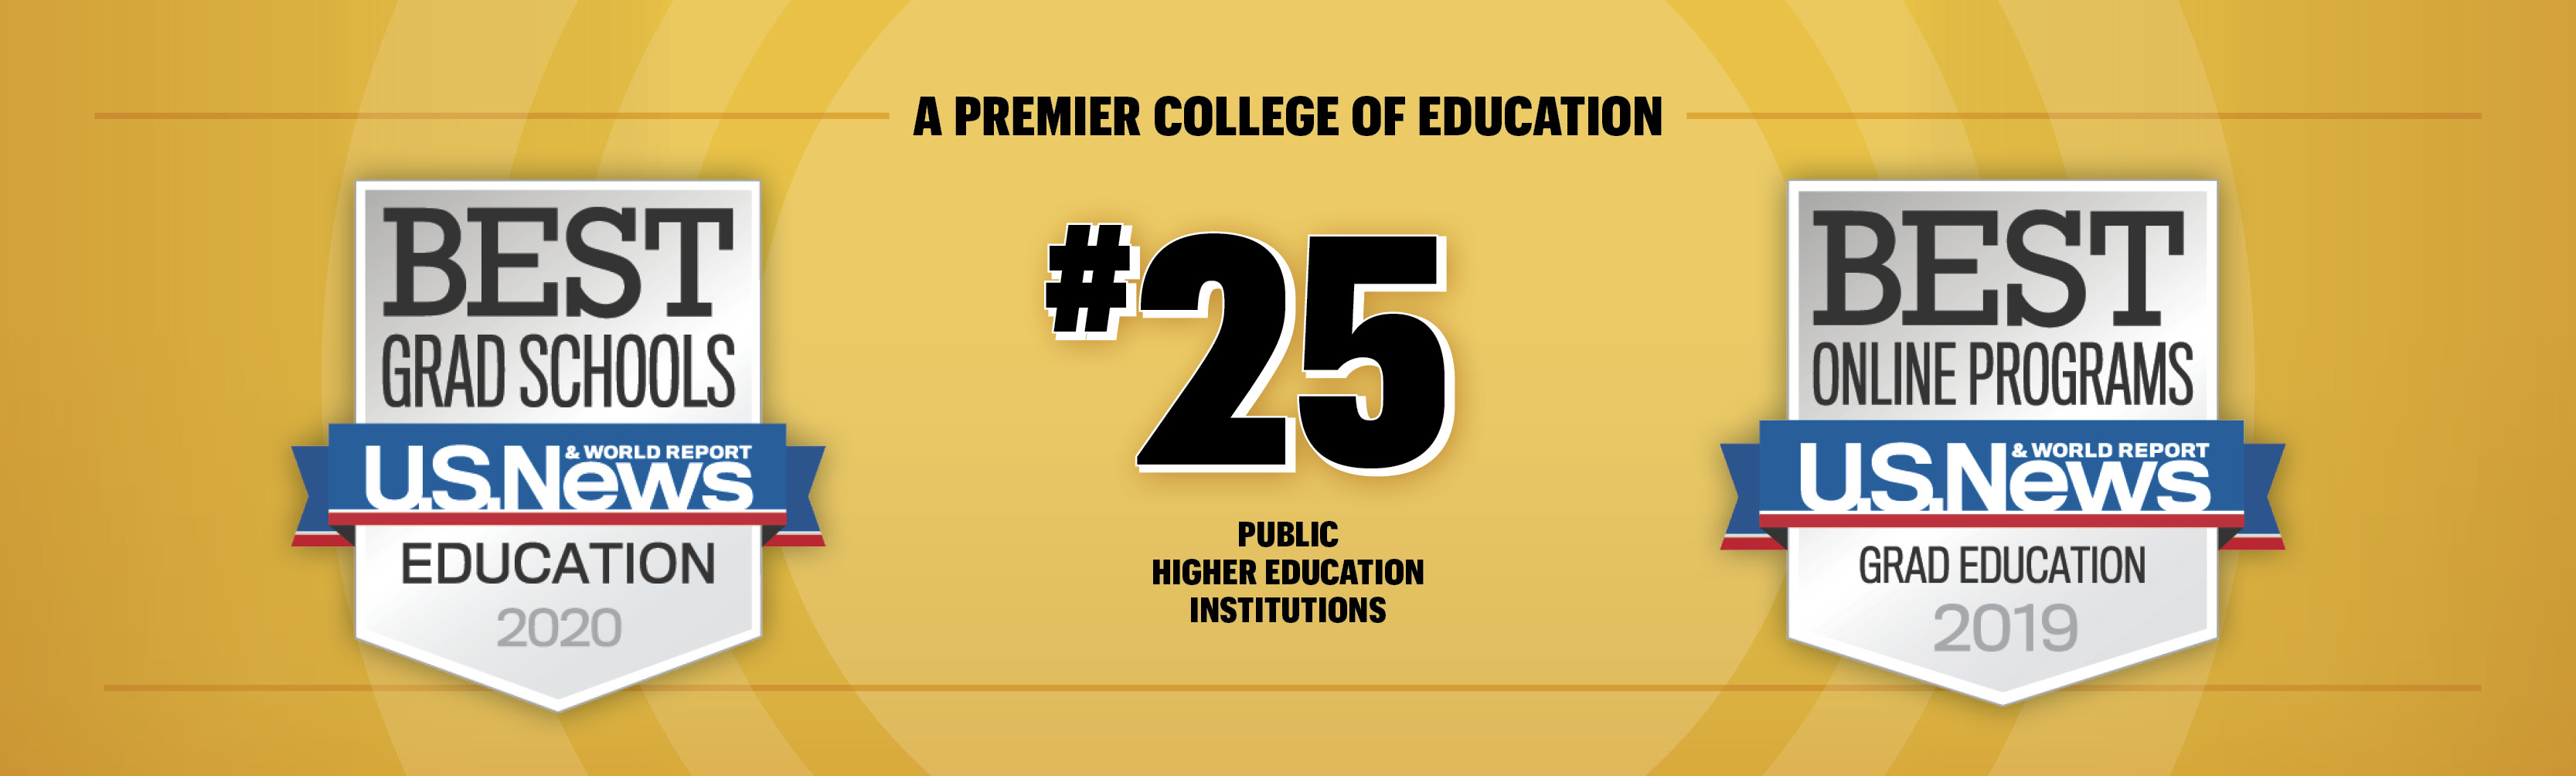 Home - College of Education